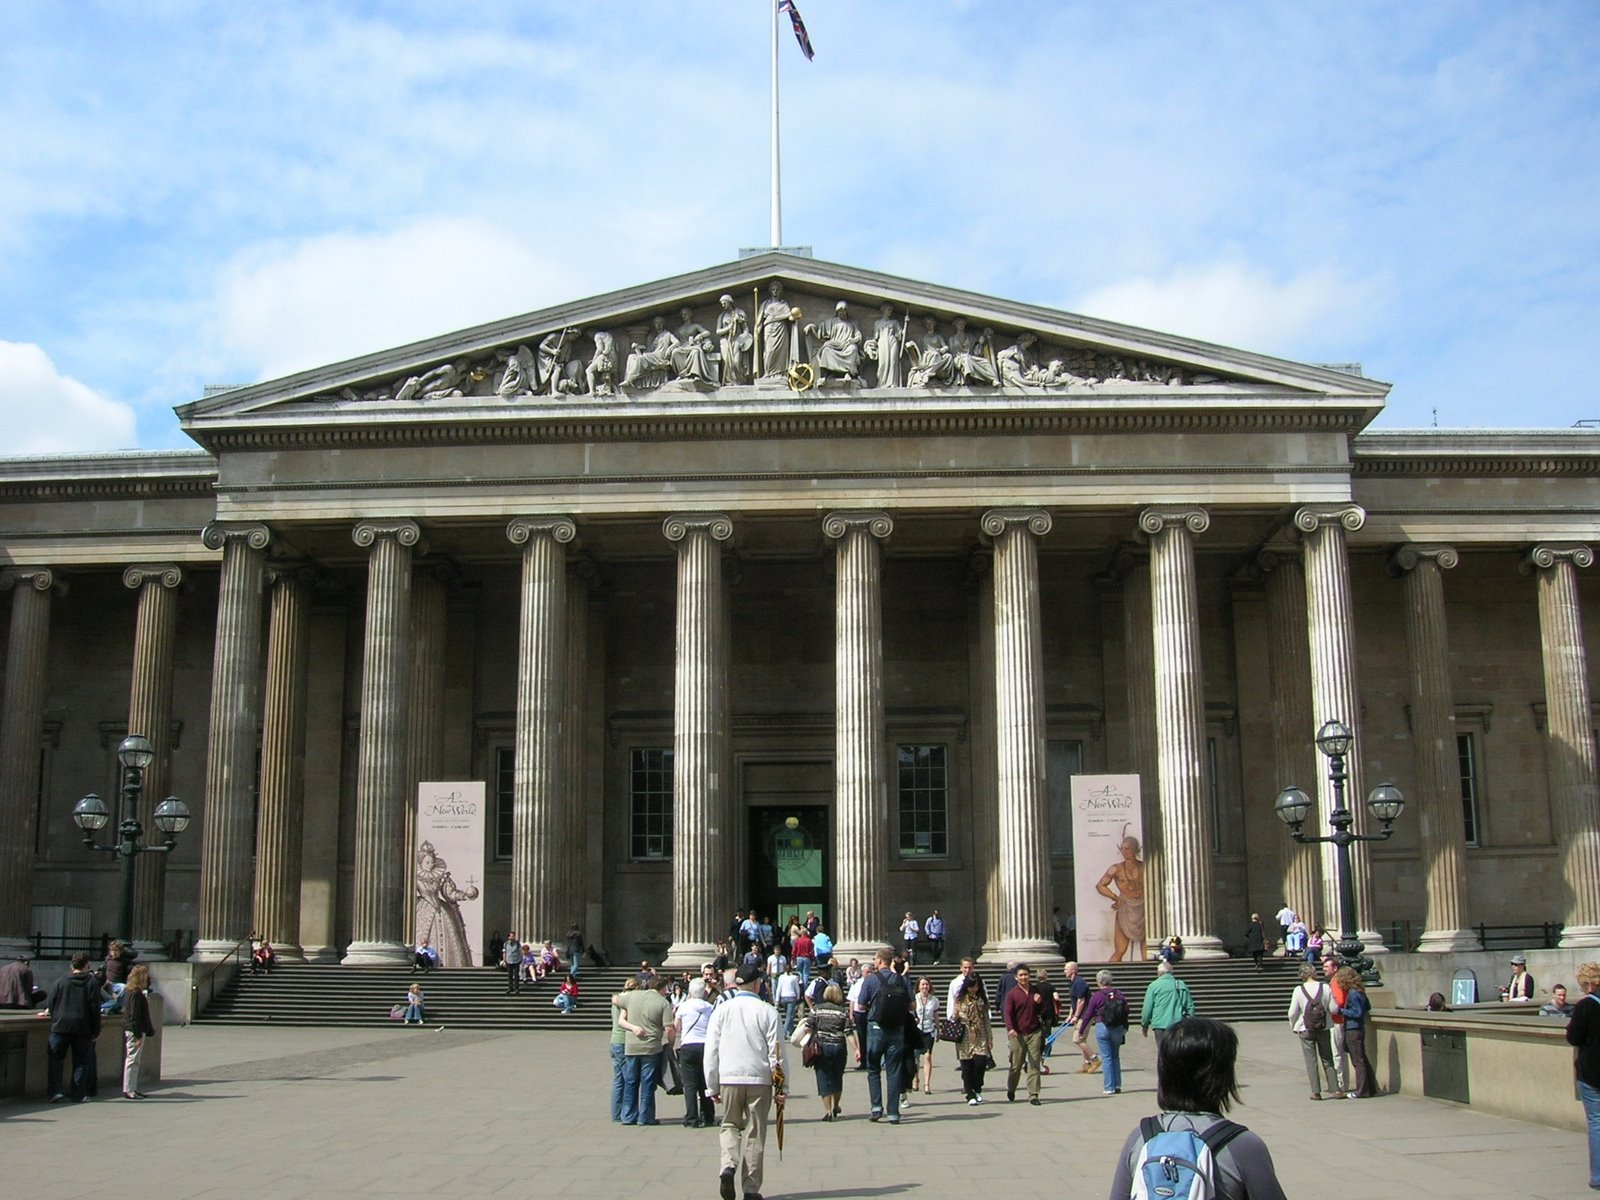 British Museum | Free Images at Clker.com - vector clip art online ...